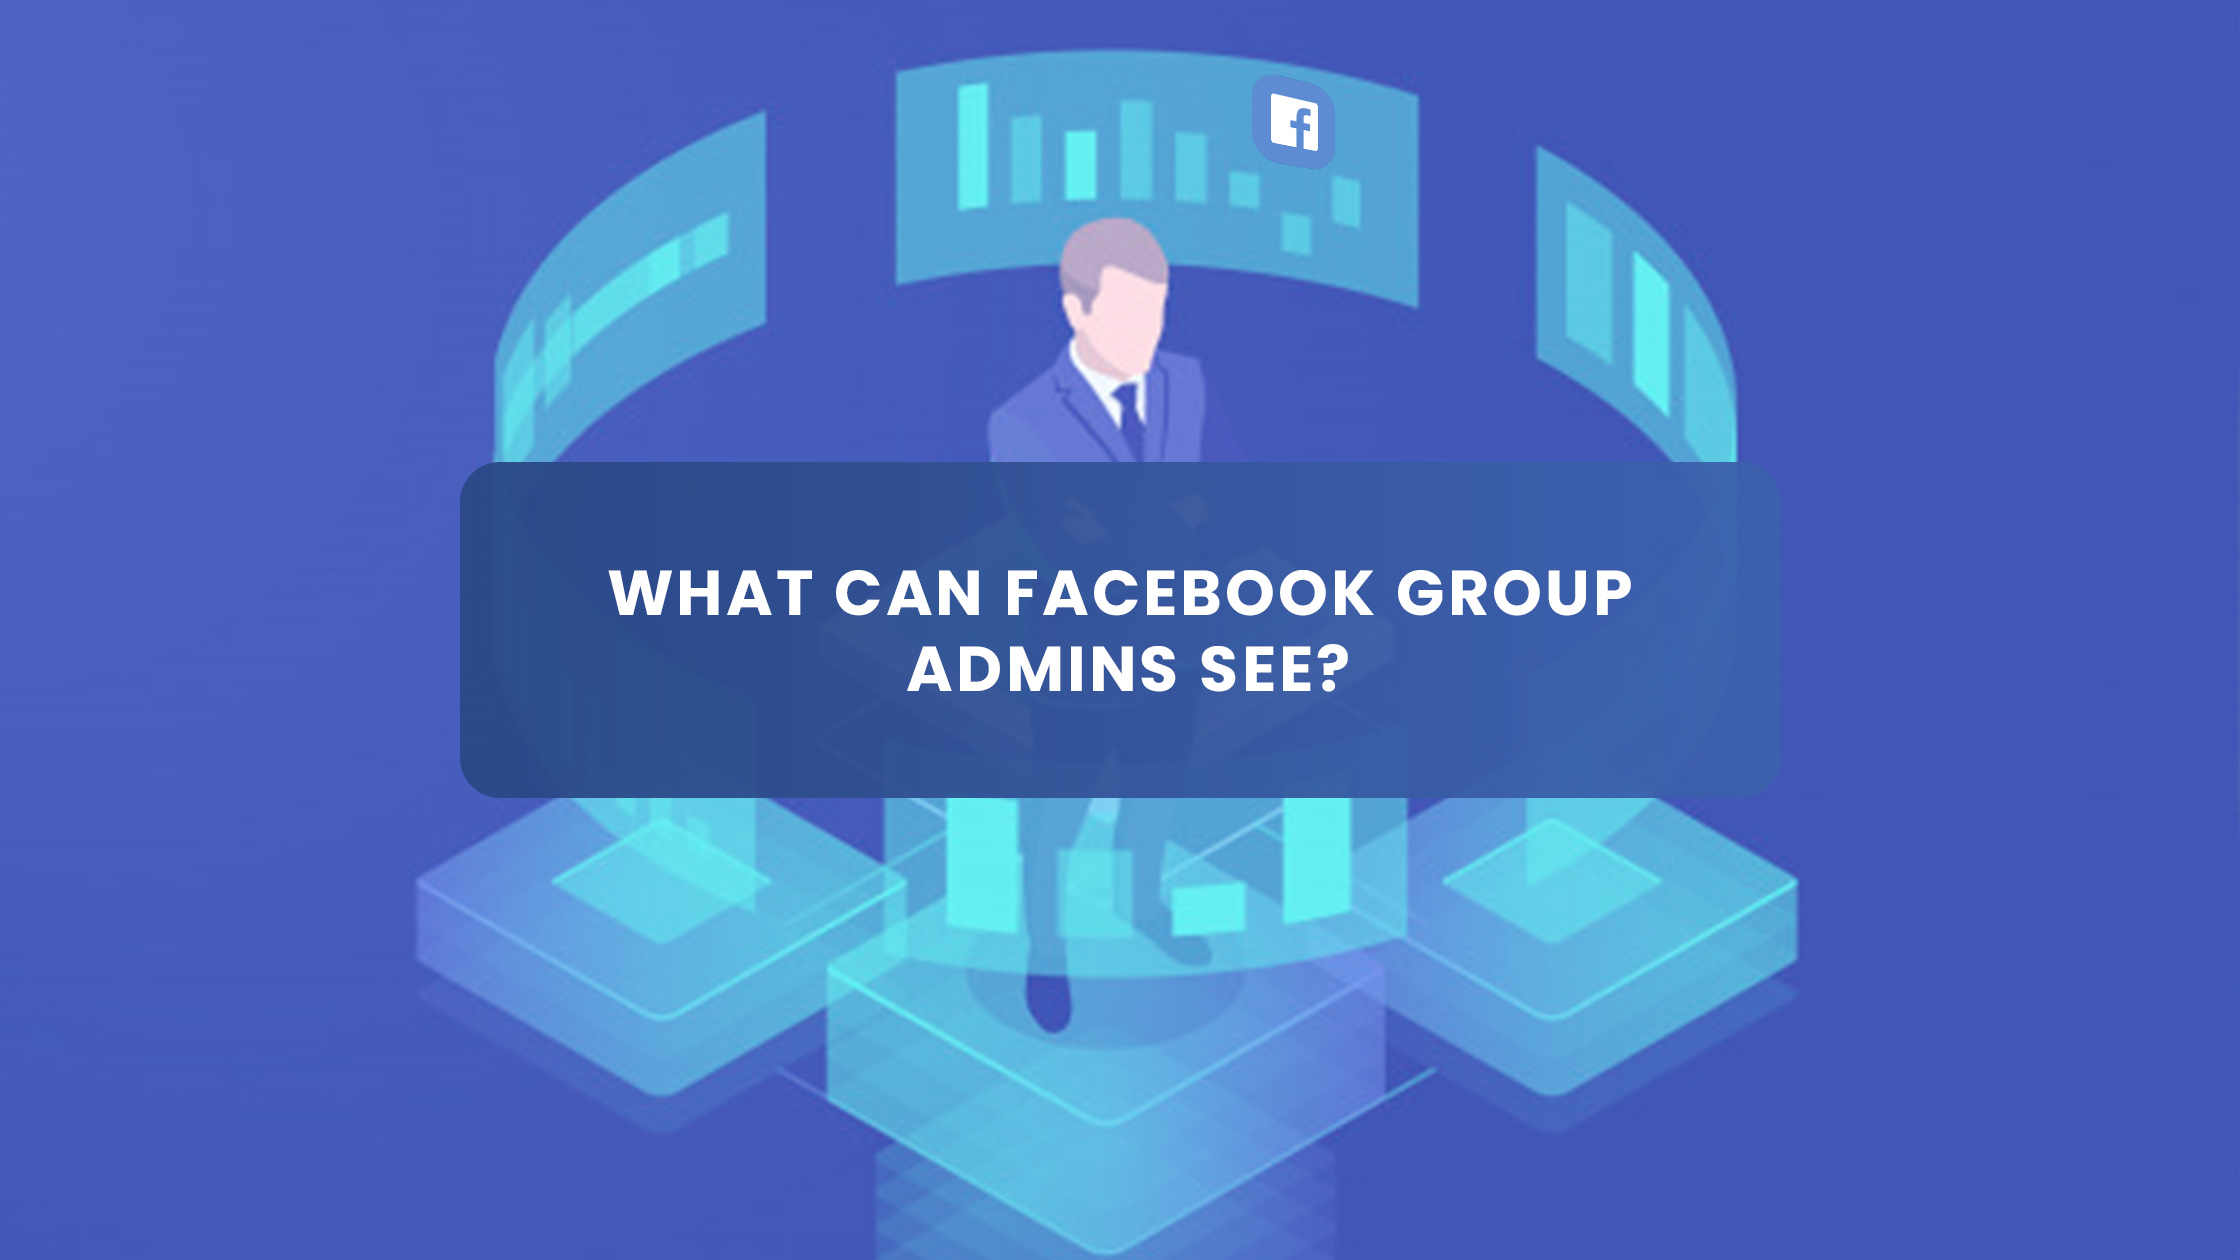 What Can Facebook Group Admins See?